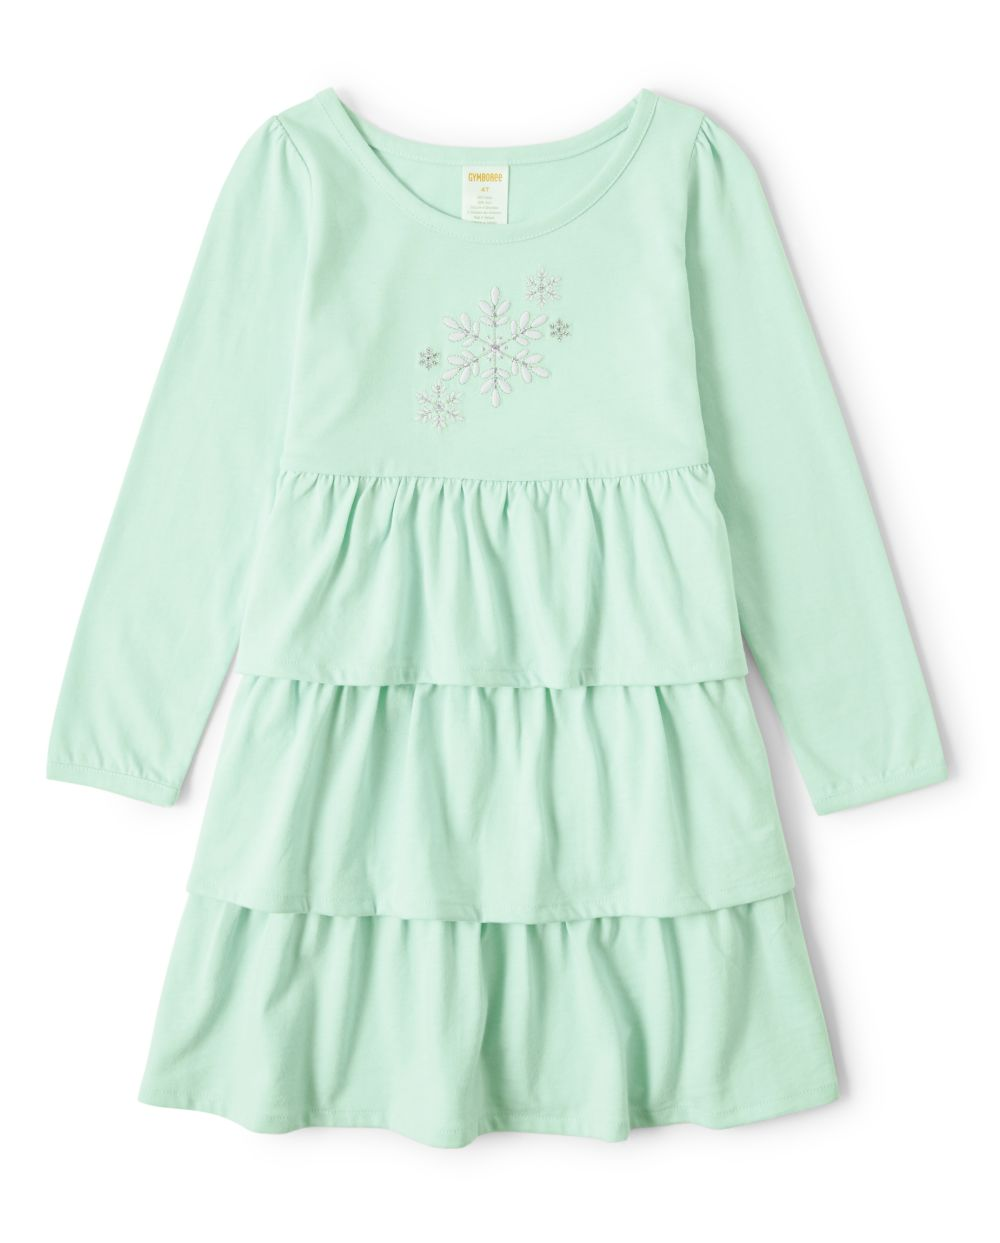 Girls Embroidered Snowflake Tiered Dress - Snow Princess